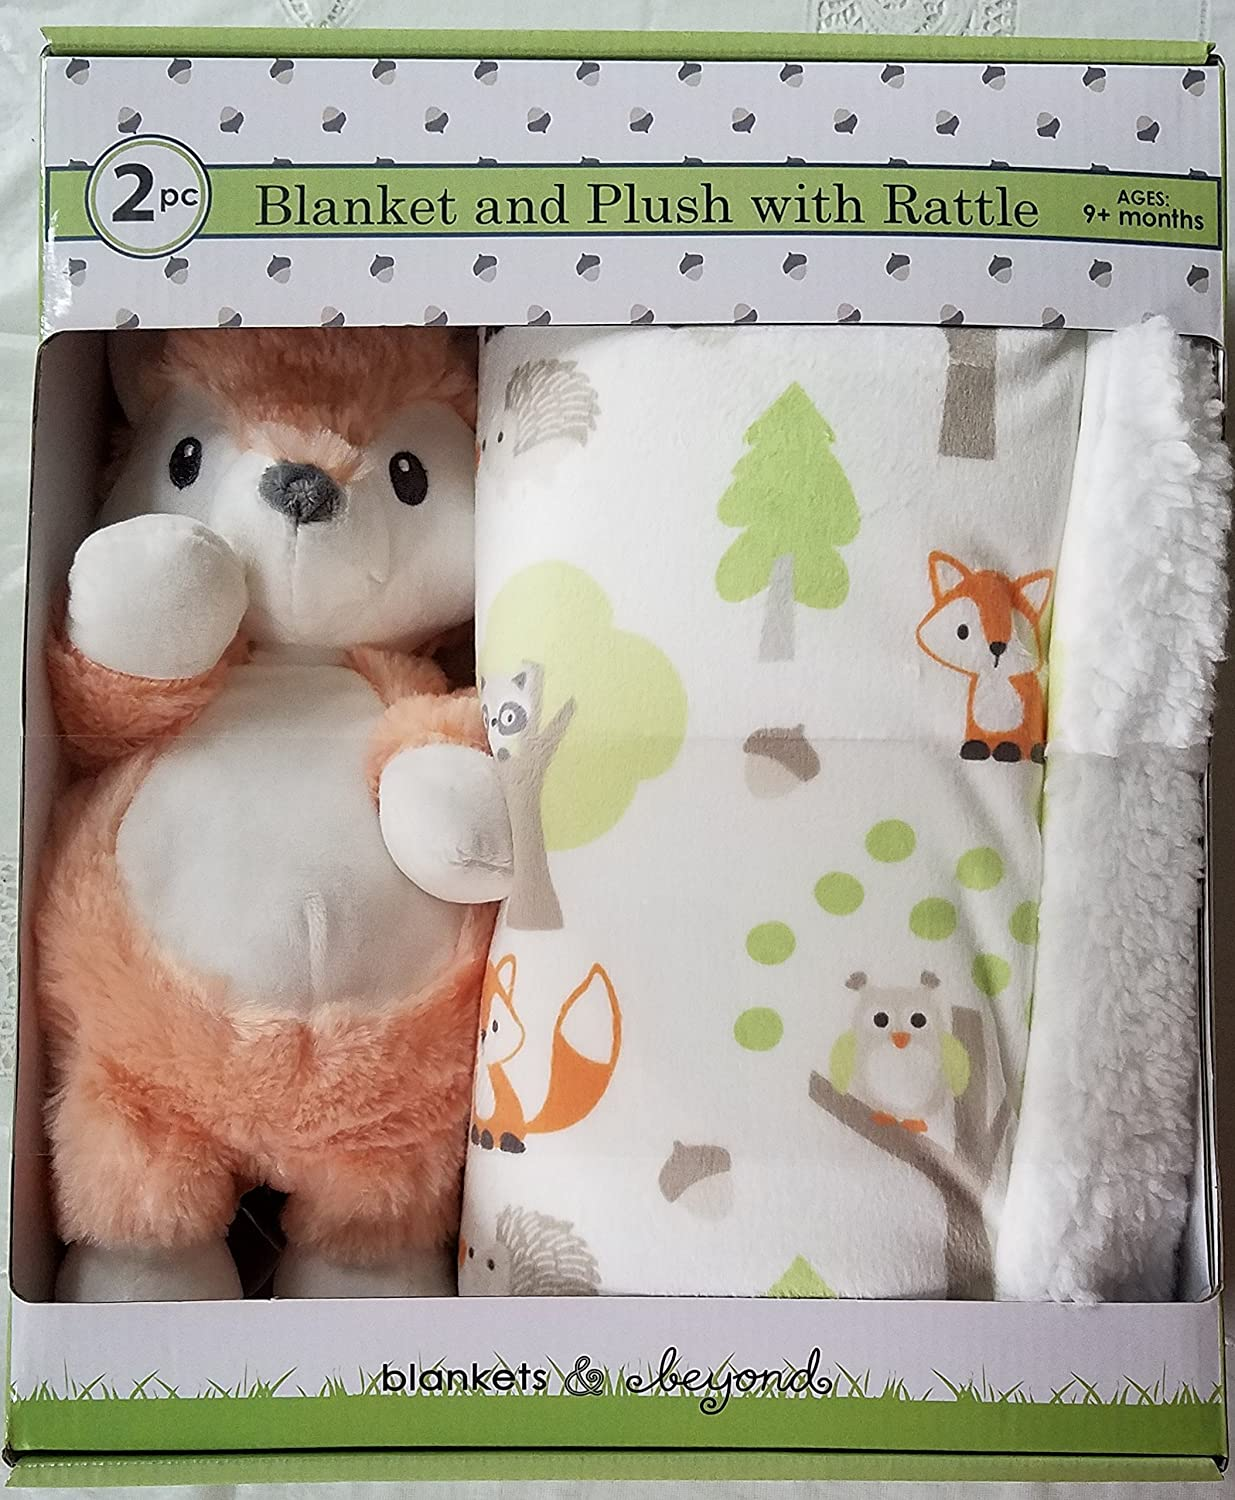 Luxury Super Soft Plush Blanket Set with Fox Rattle Toy for Baby and Toddler Gift for Holiday Christmas Birthday Nursery Blankets & Beyond